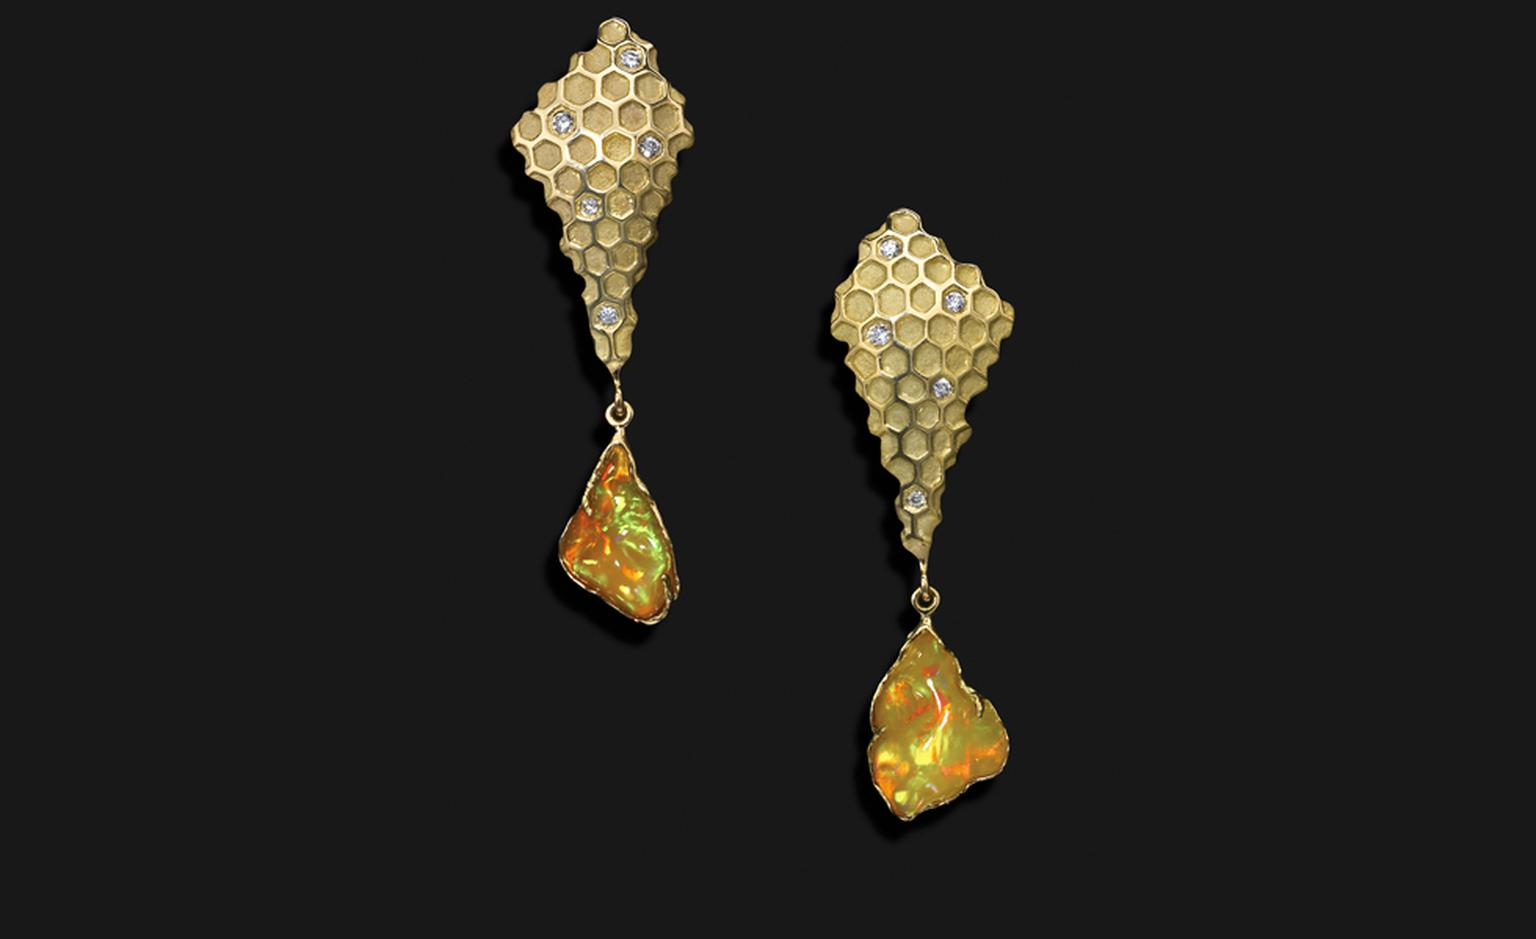 Ornella Iannuzzi: Would you like a drop of Tej Madame? Earrings. With hand-carved fire Wello opals (6cts) set in 18k gold, with diamonds. Unique piece. £7,000.